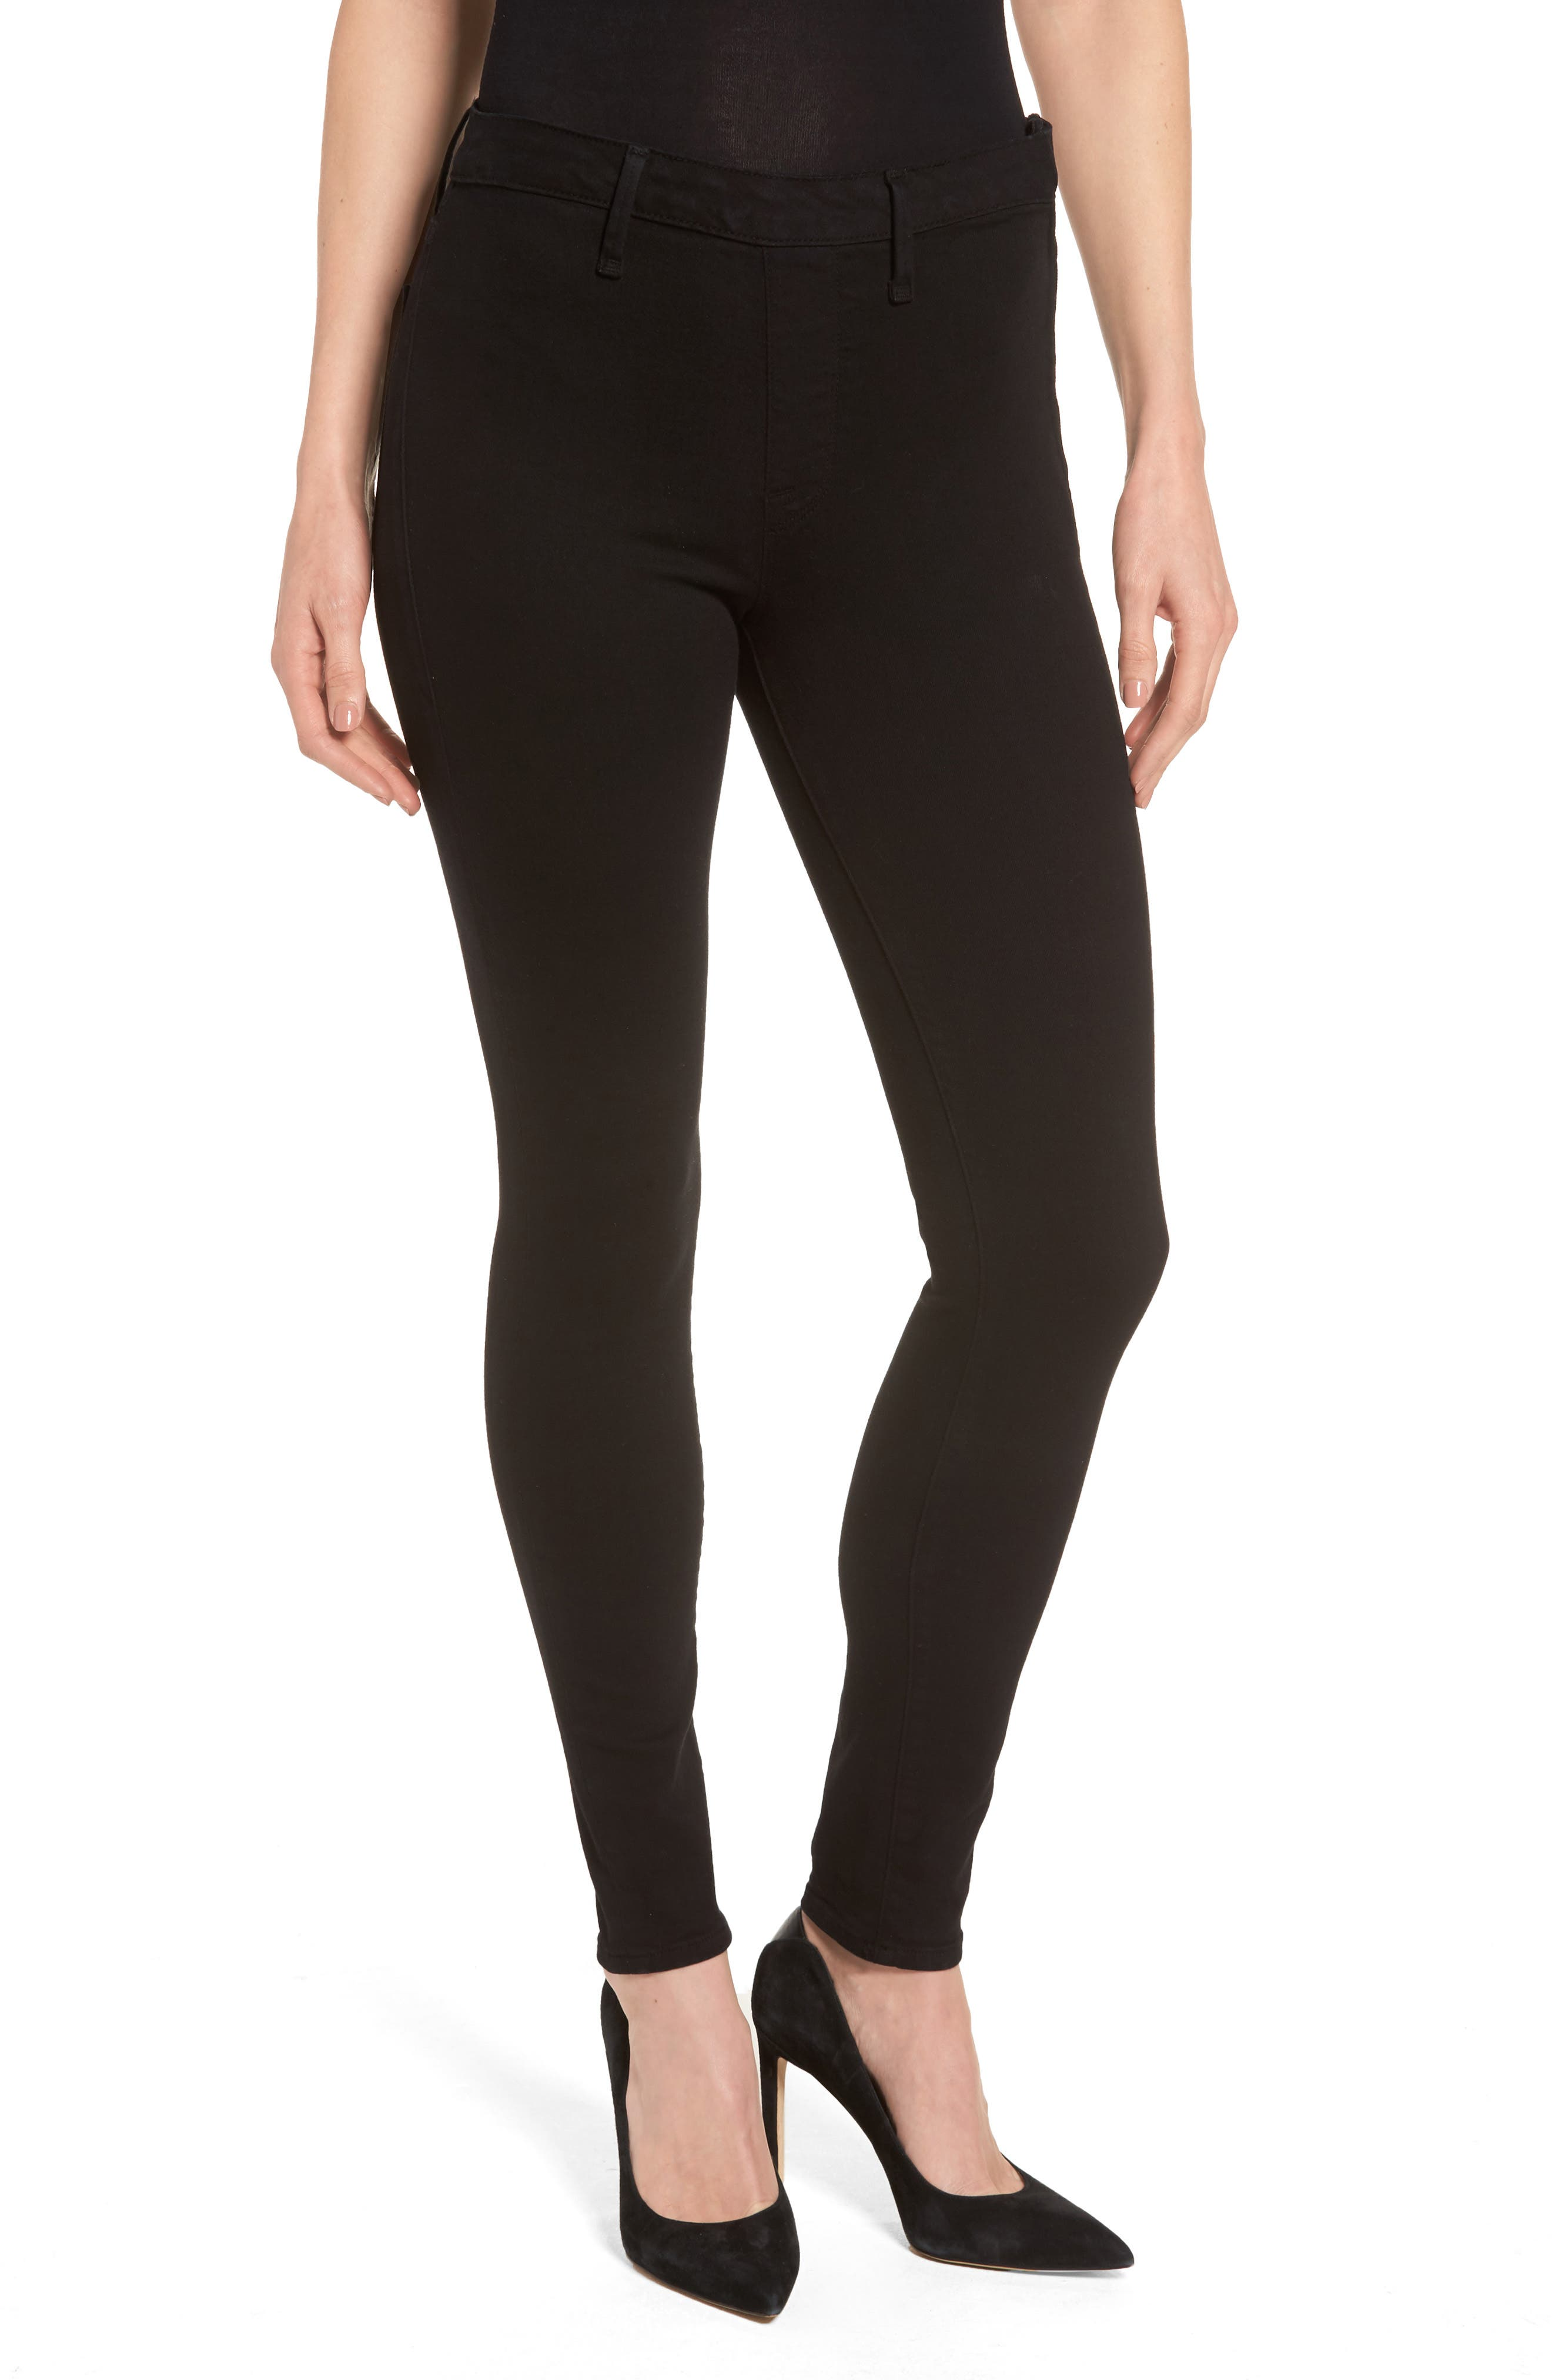 Main Image - Good American High Waist Side Zip Skinny Jeans (Black 001) (Extended Sizes)